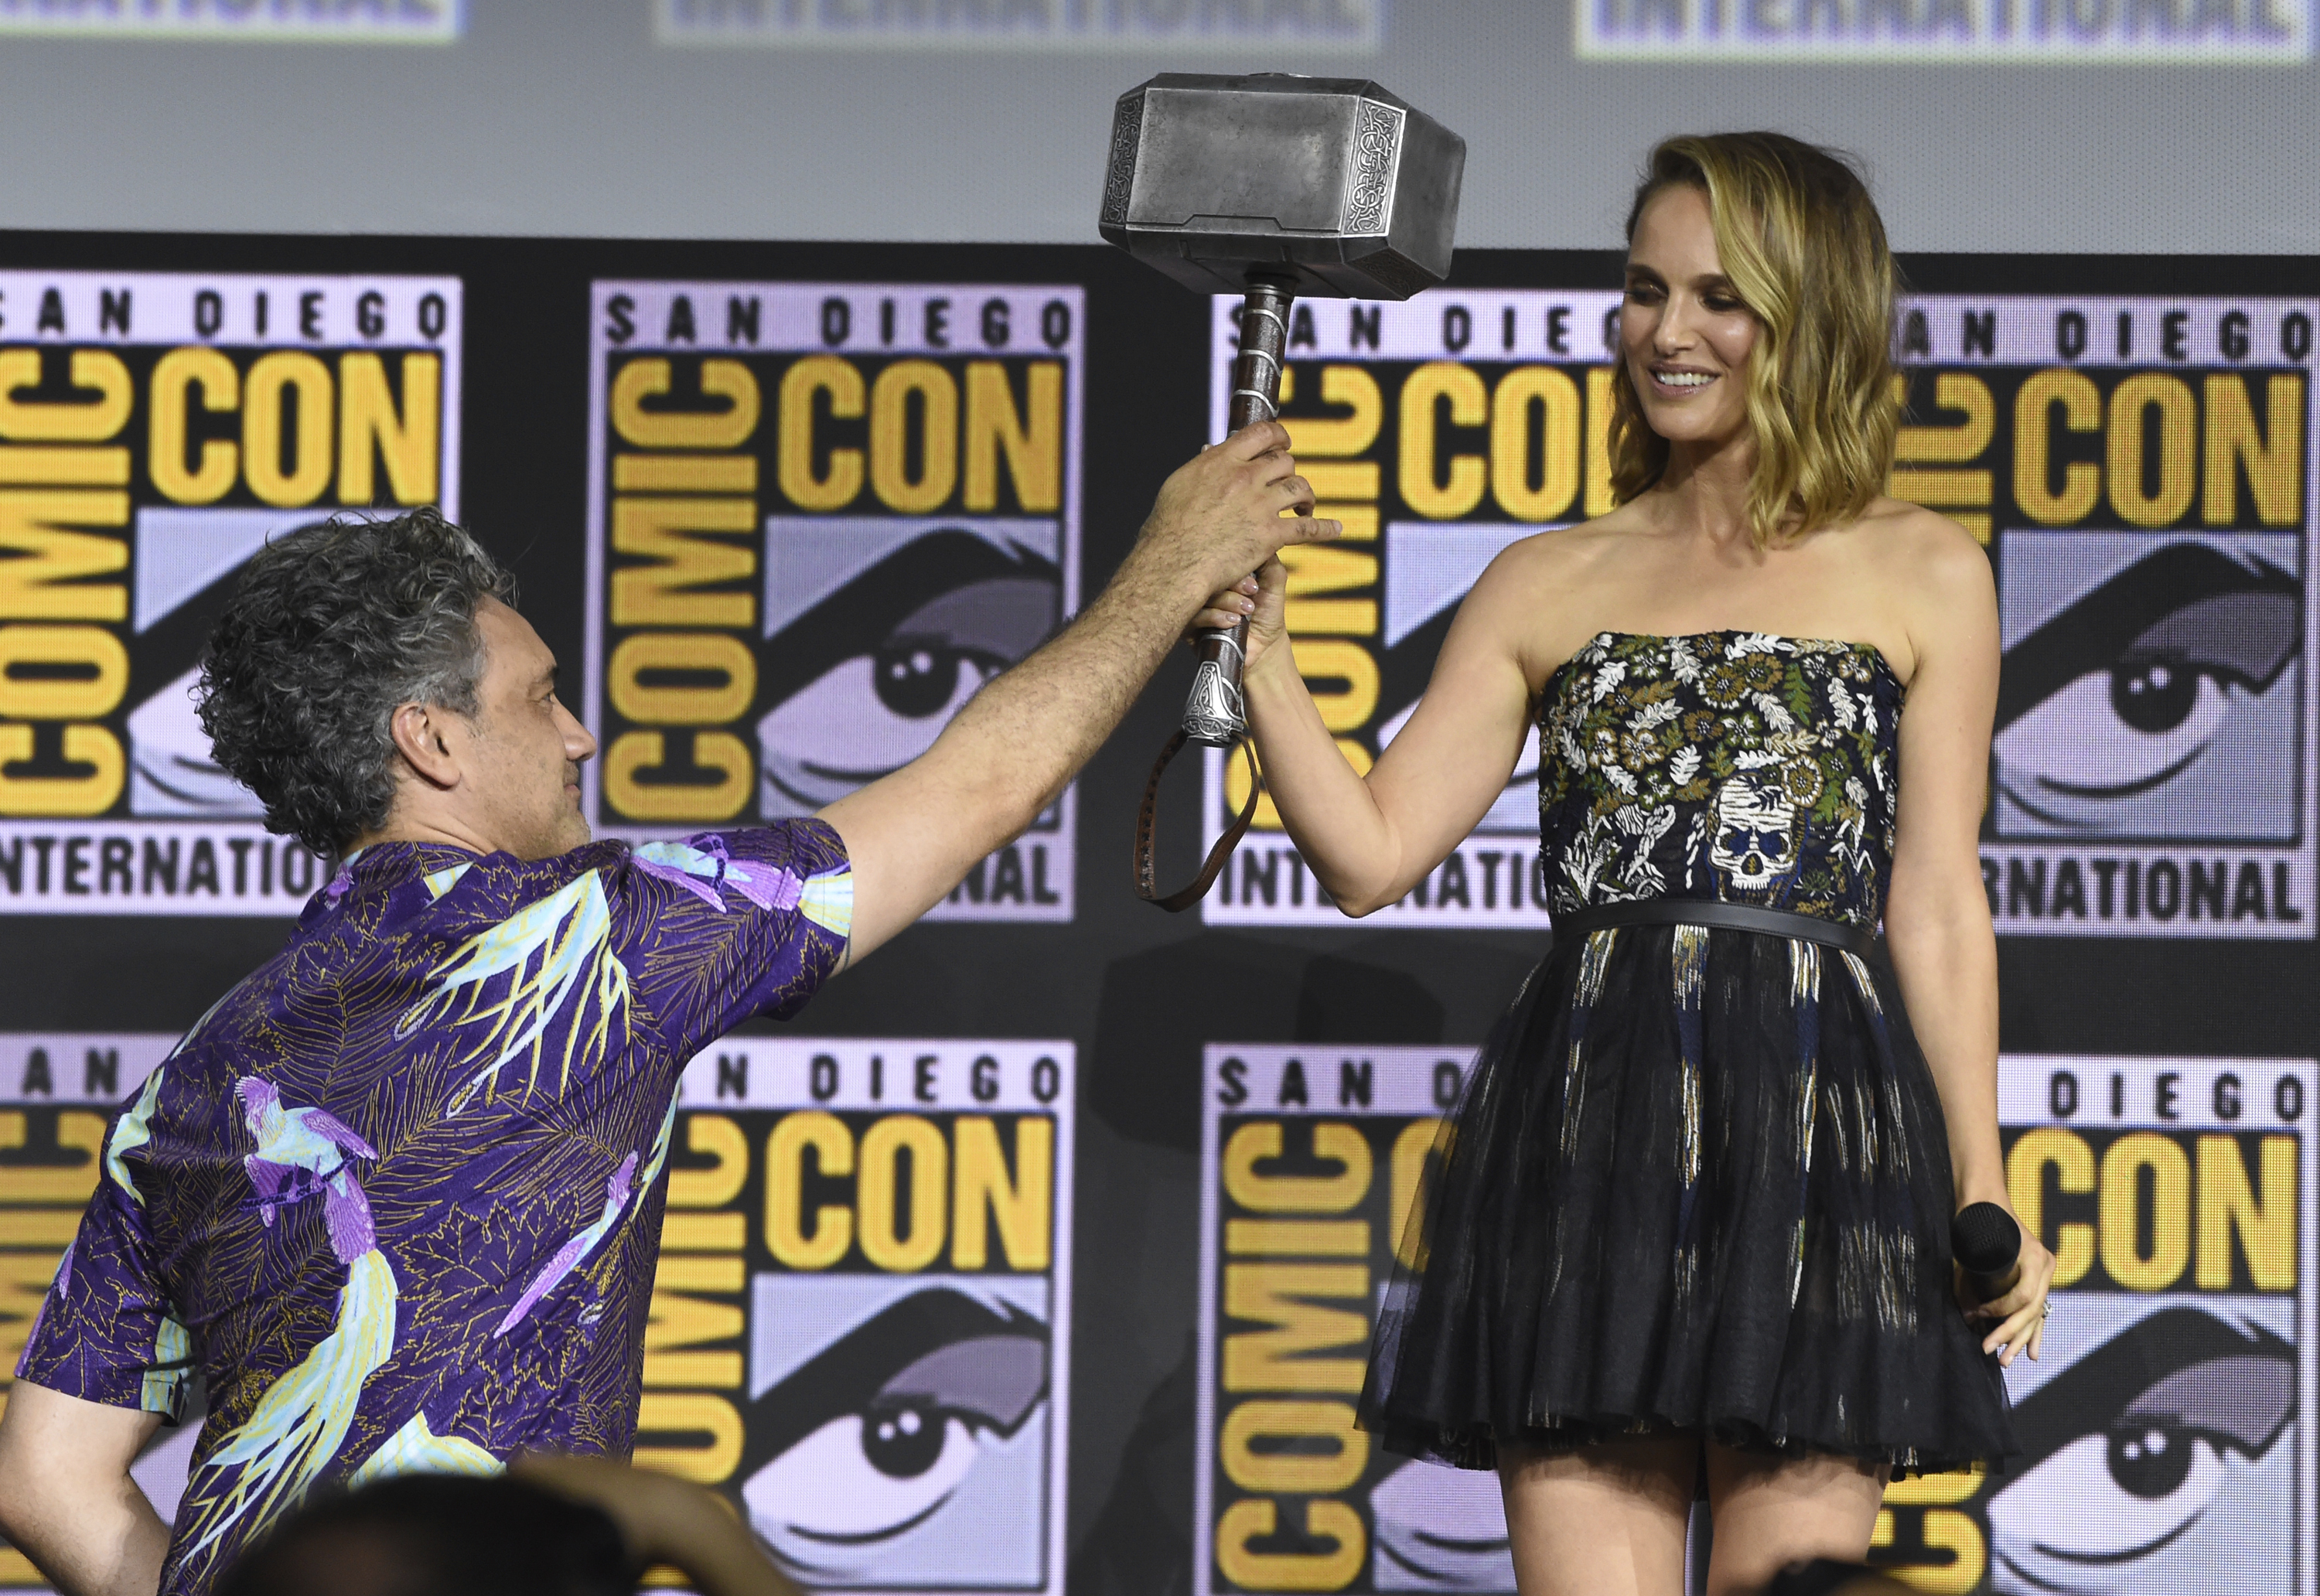 """Director Taika Waititi hands the Thor hammer to Natalie Portman during the """"Thor Love And Thunder"""" portion of the Marvel Studios panel on day three of Comic-Con International on Saturday, July 20, 2019, in San Diego. (Photo by Chris Pizzello/Invision/AP)"""